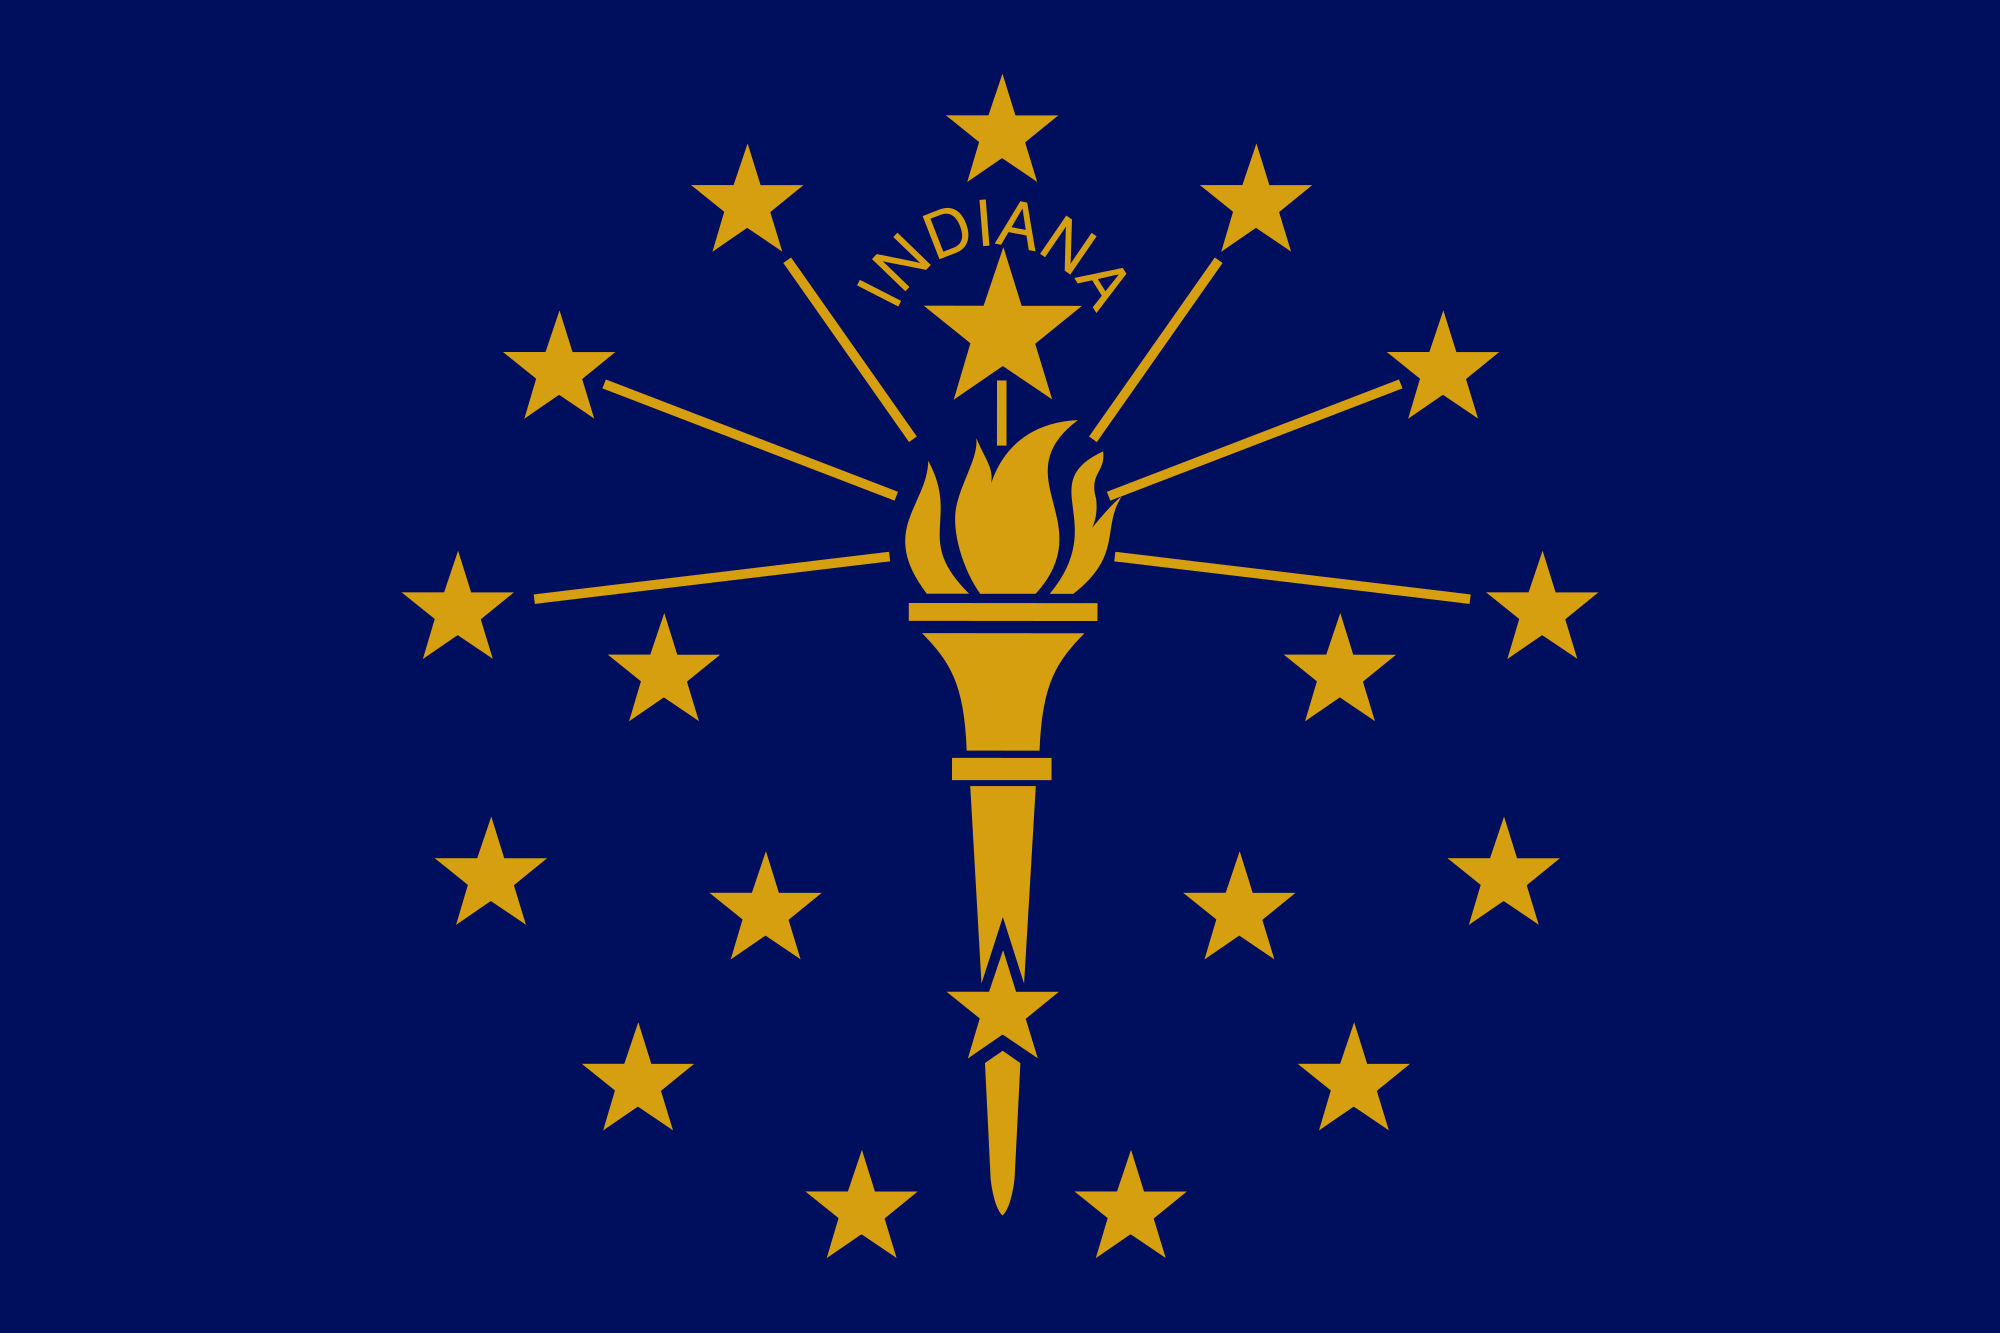 - INDIANA DRONE REGISTRATION